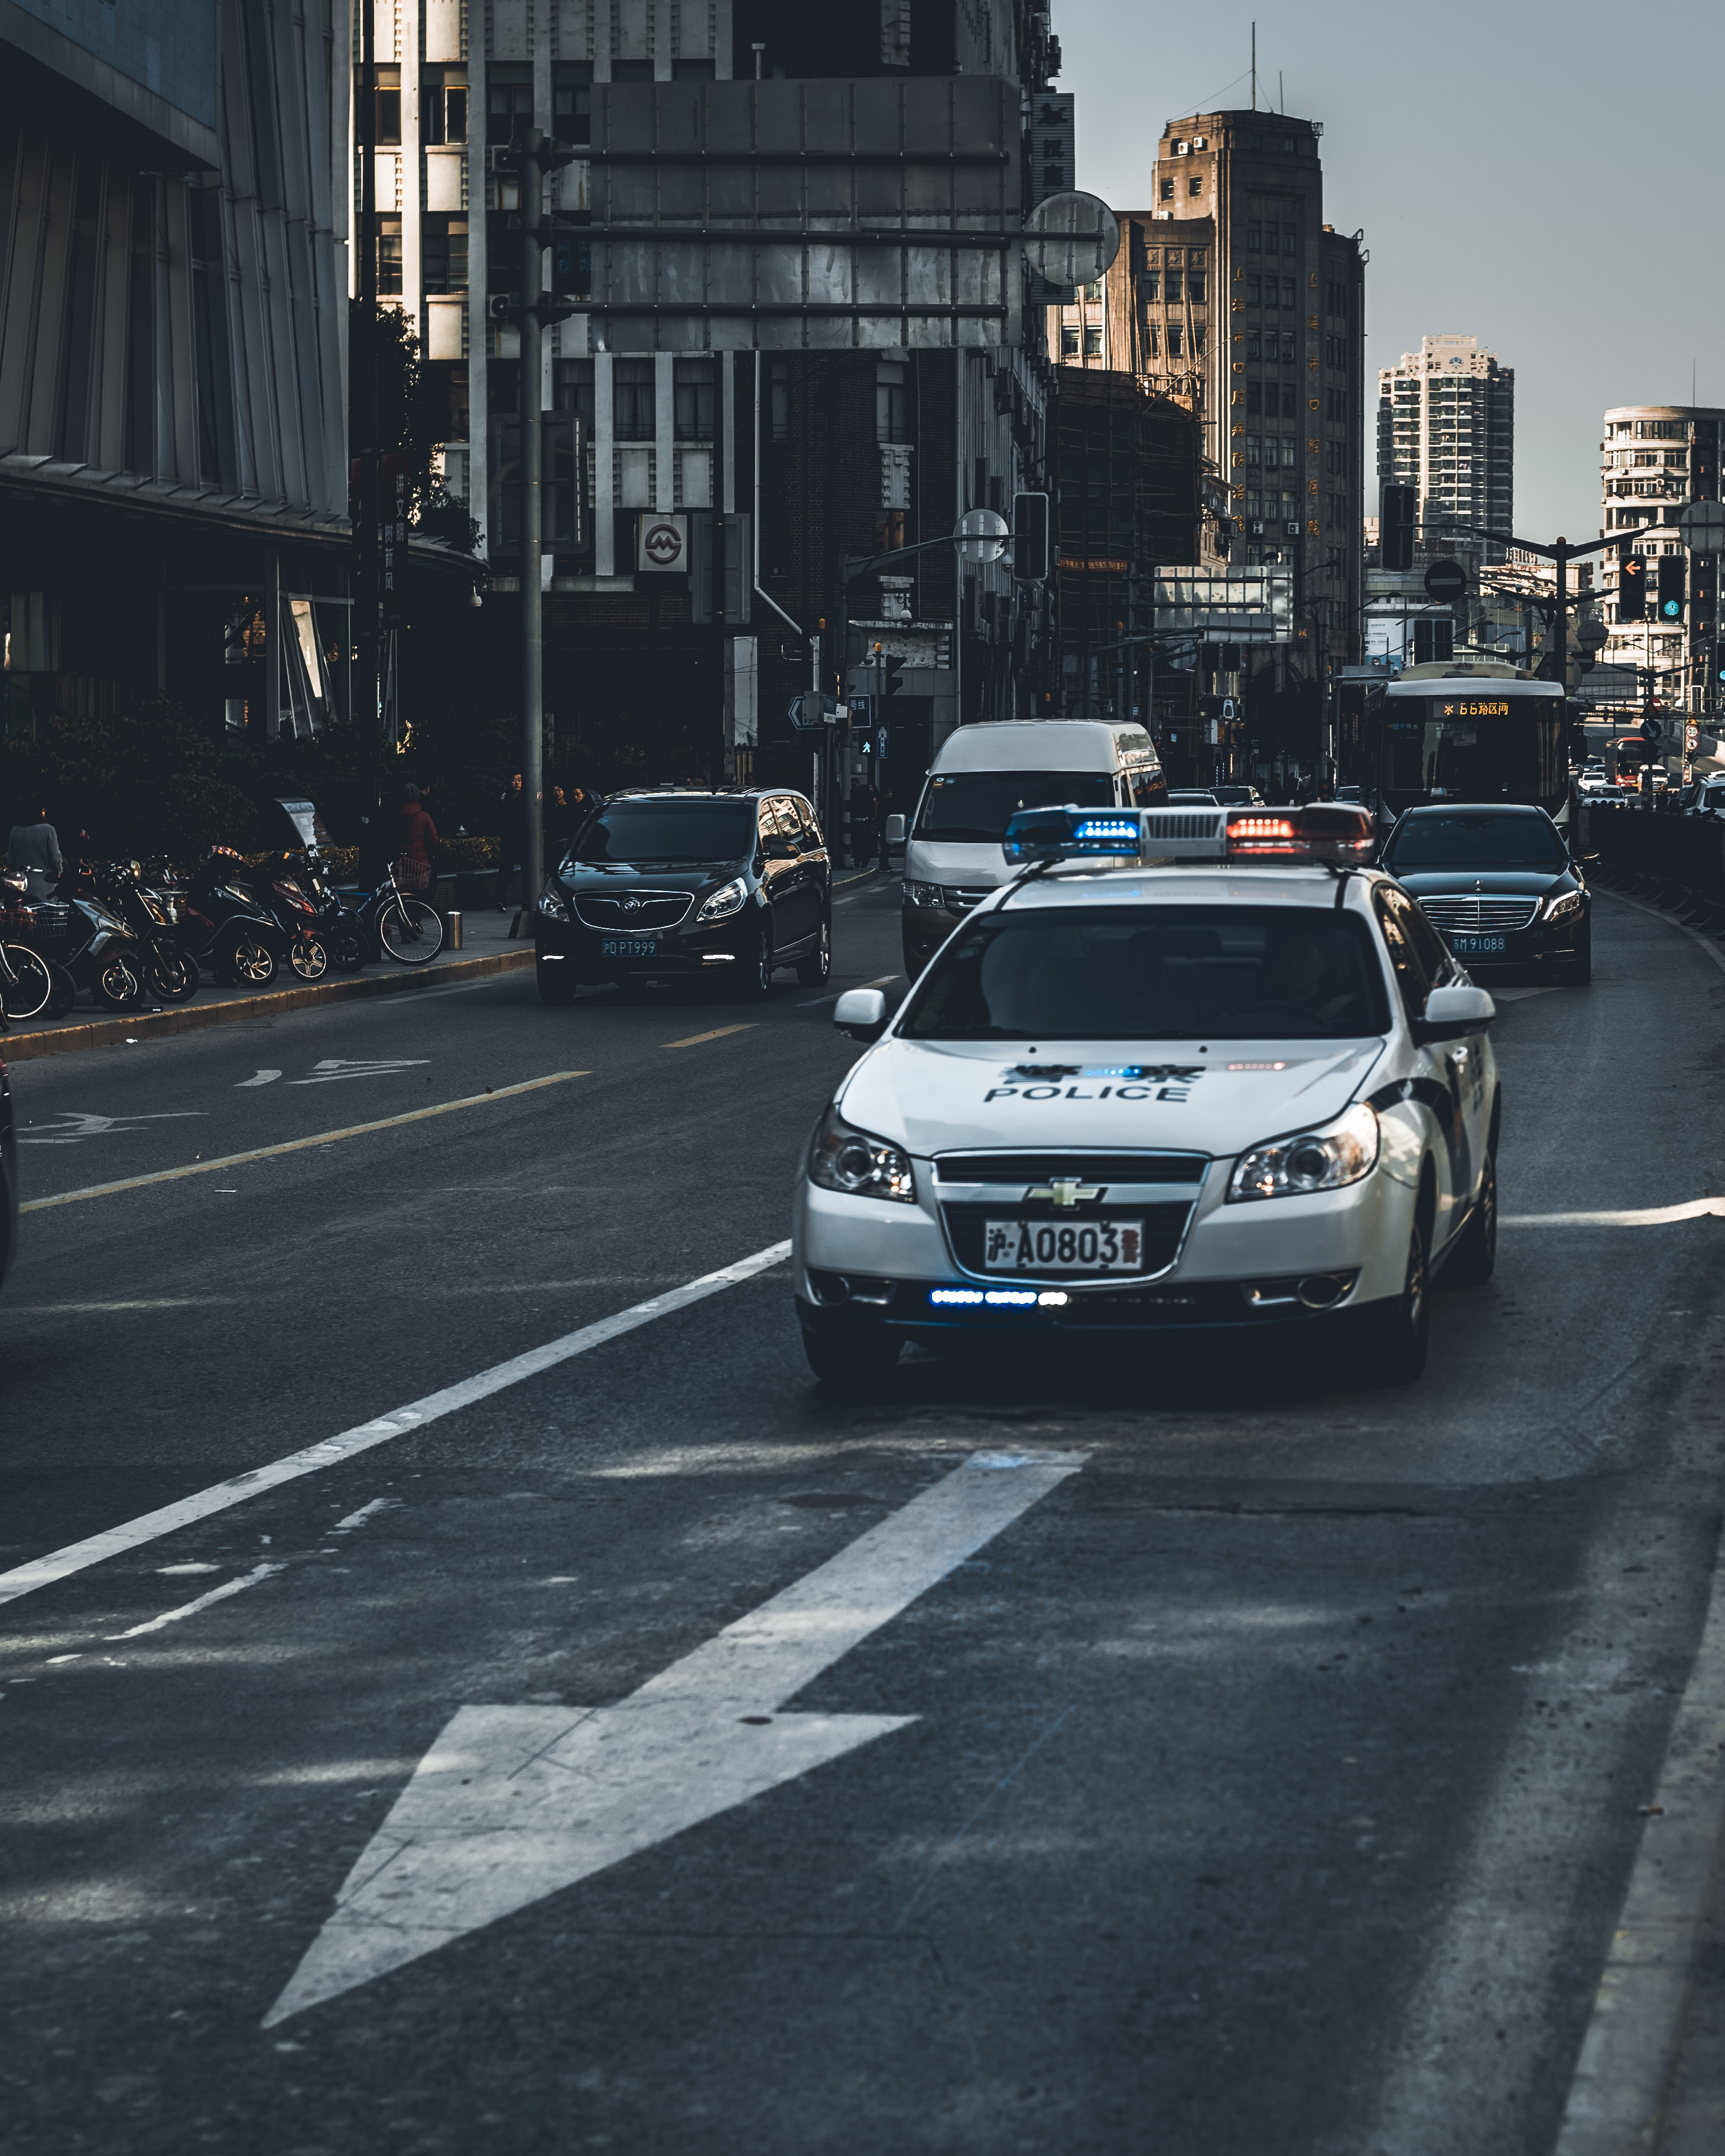 police car on road